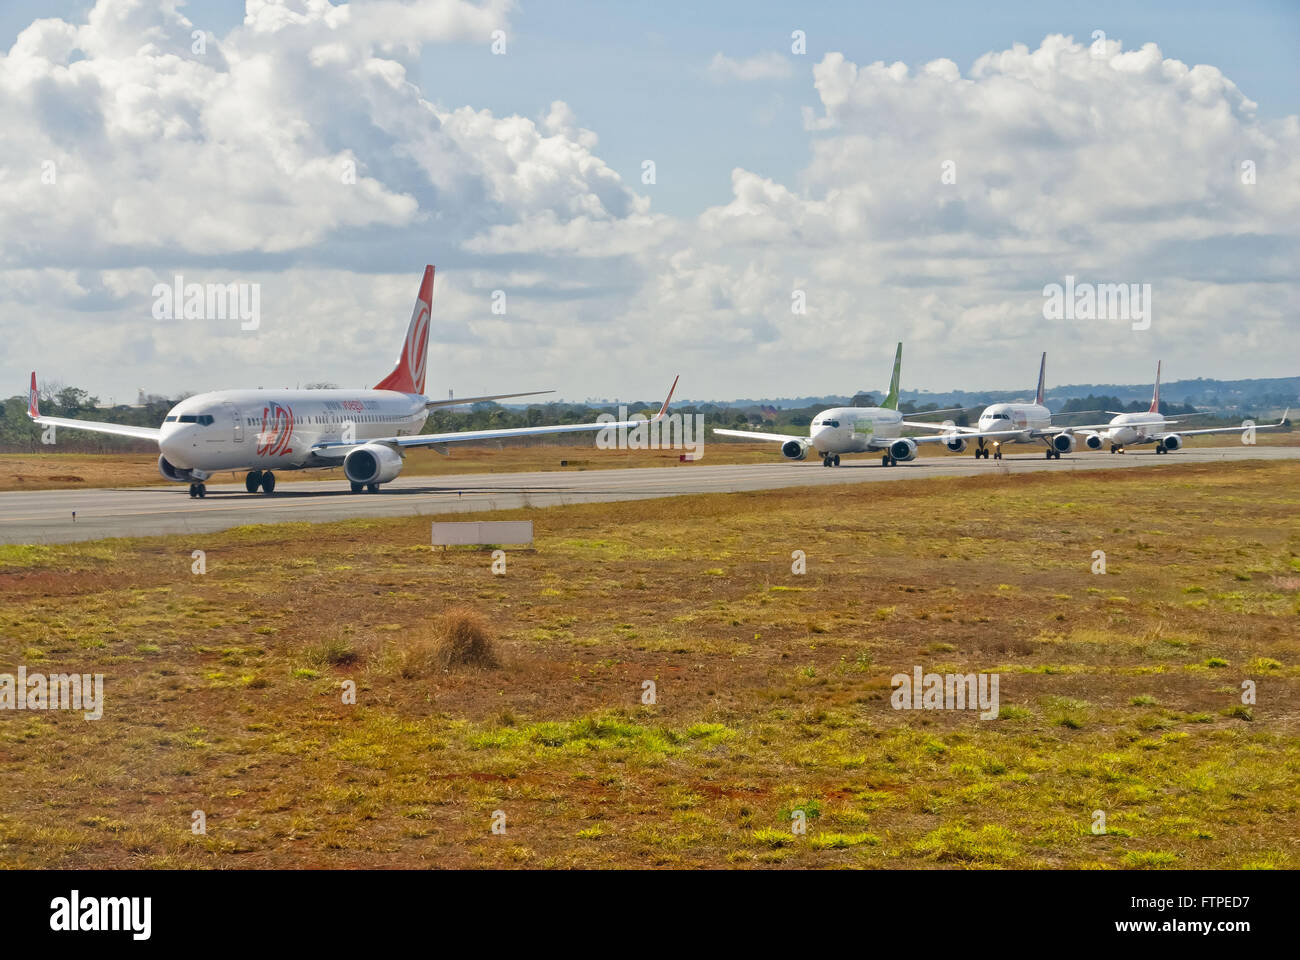 Congestion of planes in Brasilia International Airport - Stock Image